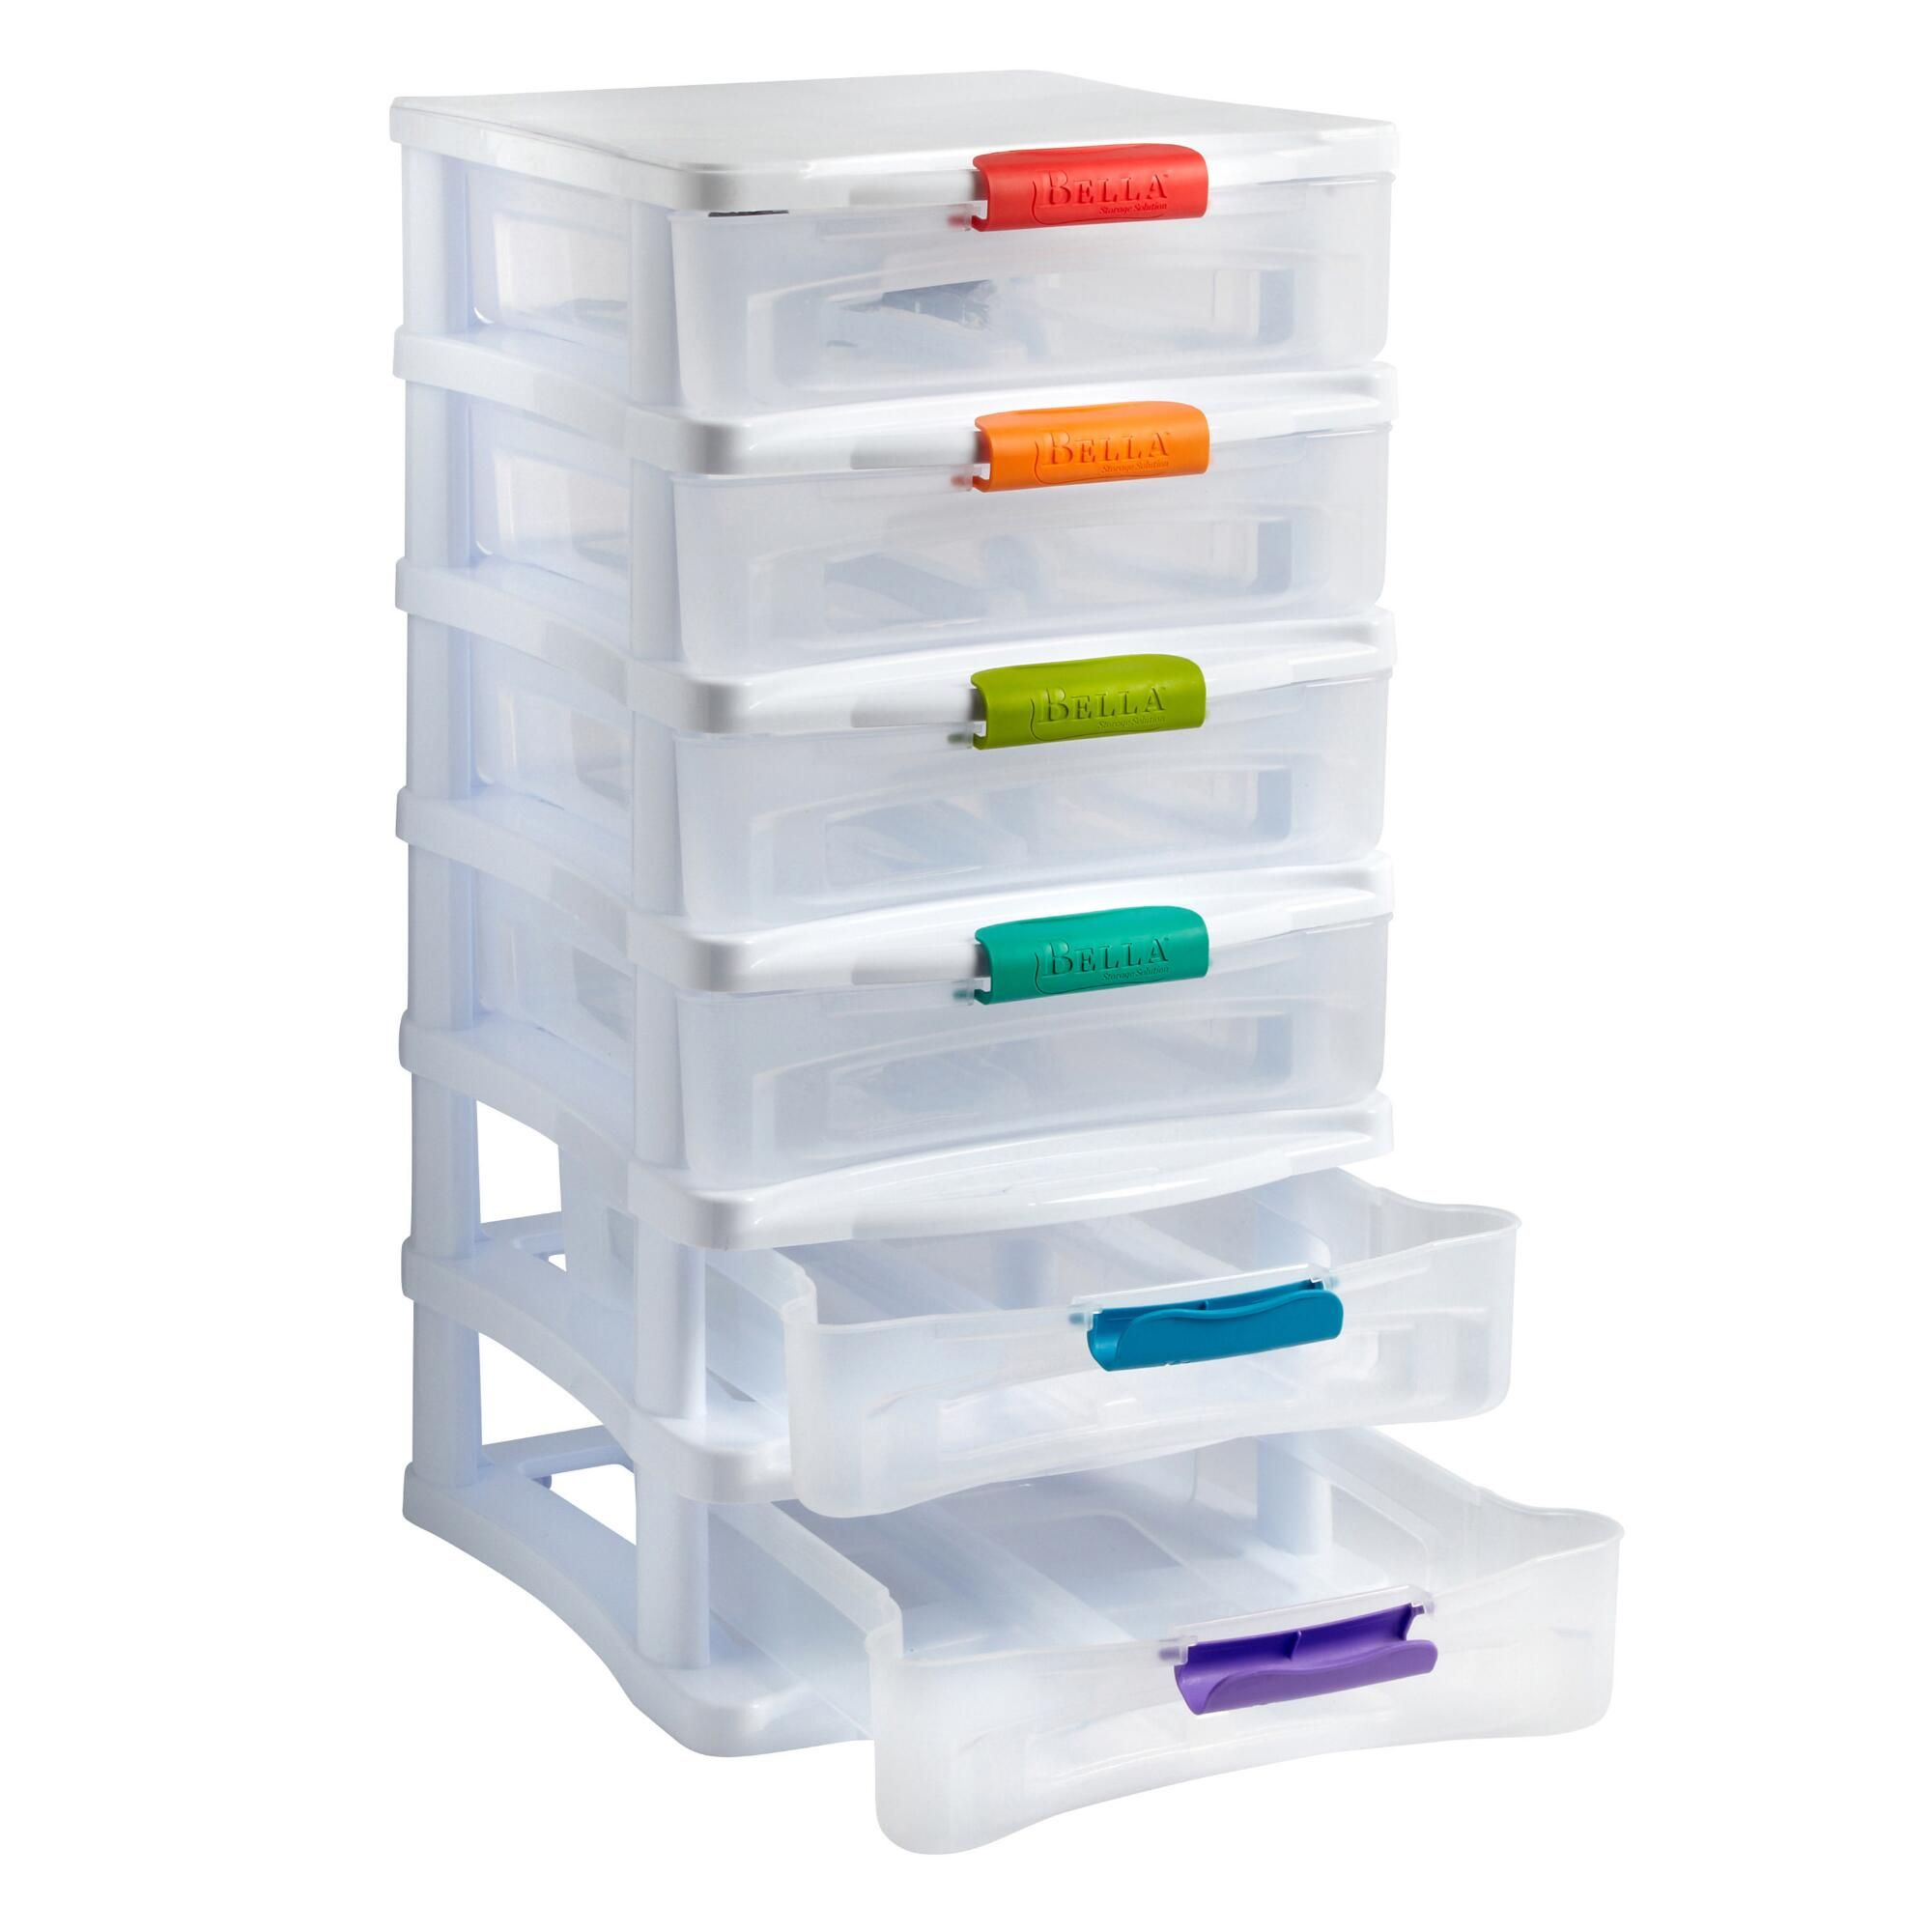 walmart unbelievable cabinet organizer pull and utensil depot organizers countertop out drawer kitchen size drawers home for full storage pans pantry shelves of pots